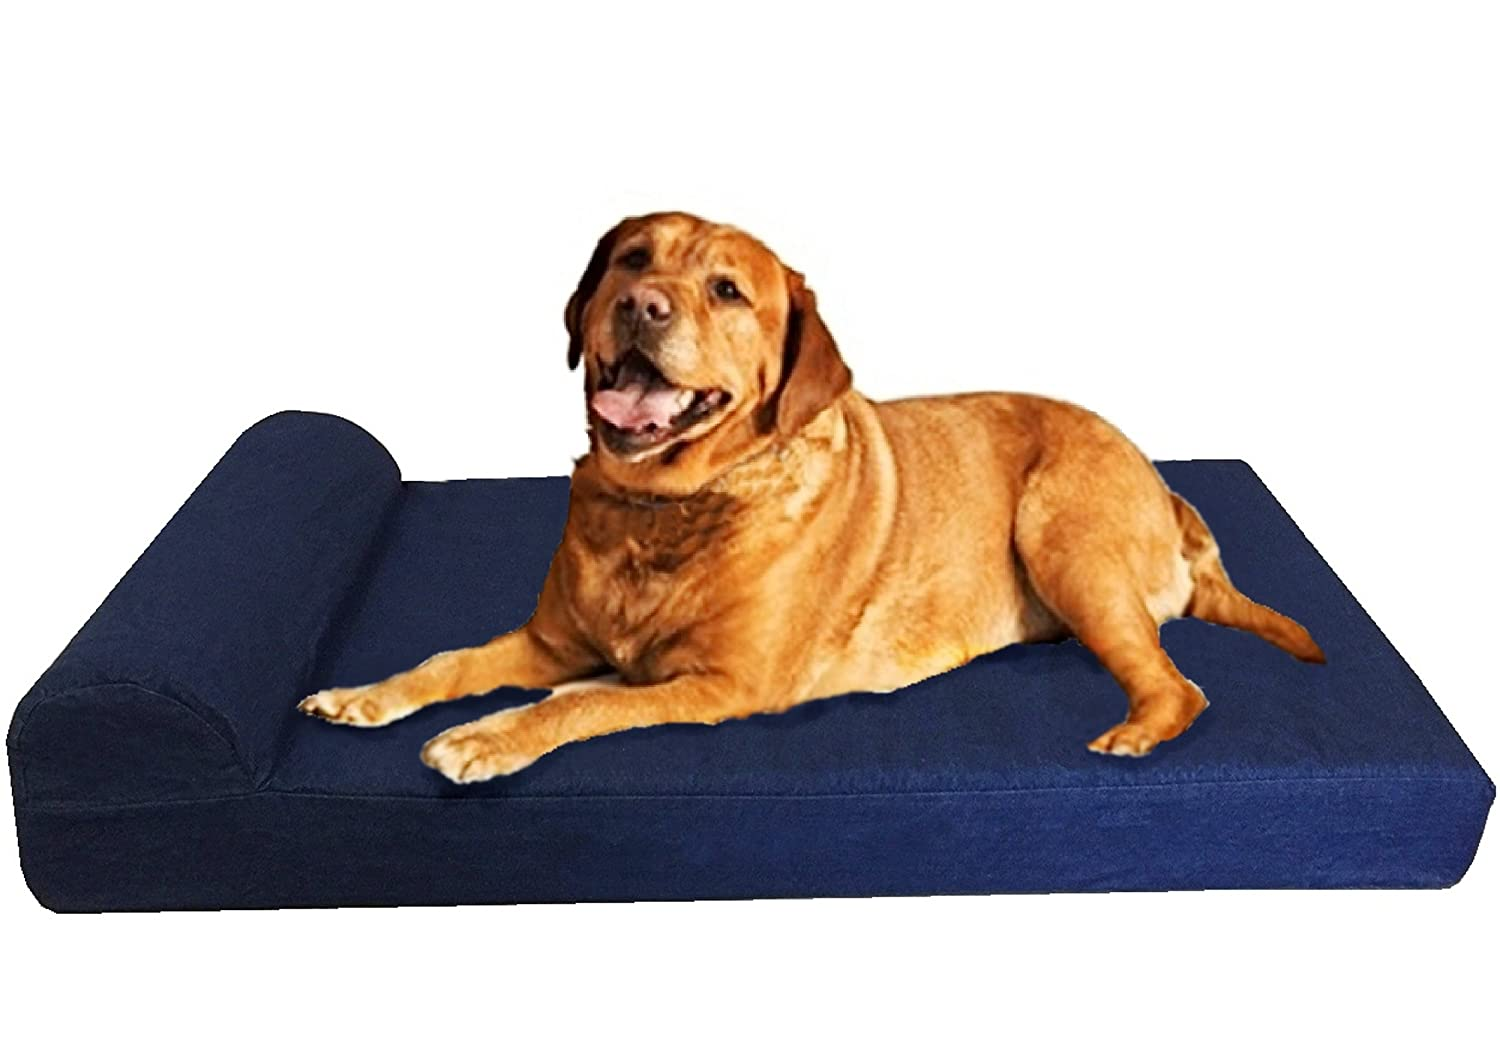 Dogbed4less Premium Extra Large Head Rest Orthopedic Cooling Memory Foam Dog Bed with Waterproof Internal Case and Durable Washable External Cover for Large to XL Pet